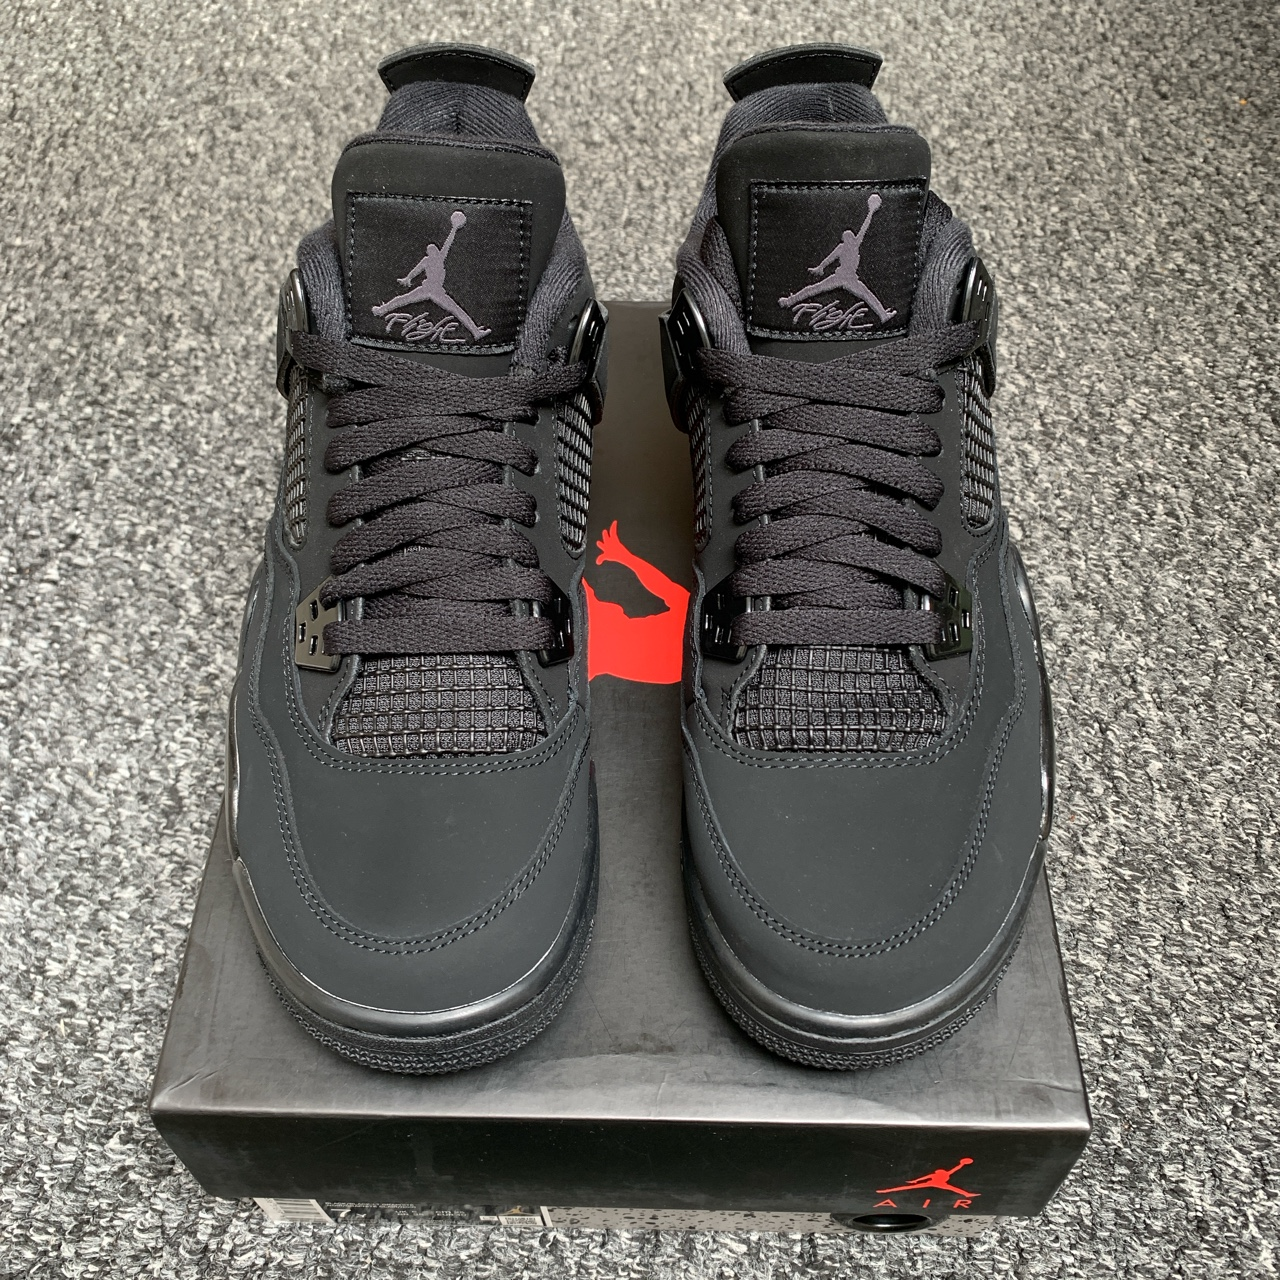 Air Jordan 4 Retro Black Cat Sold Out But Can Depop